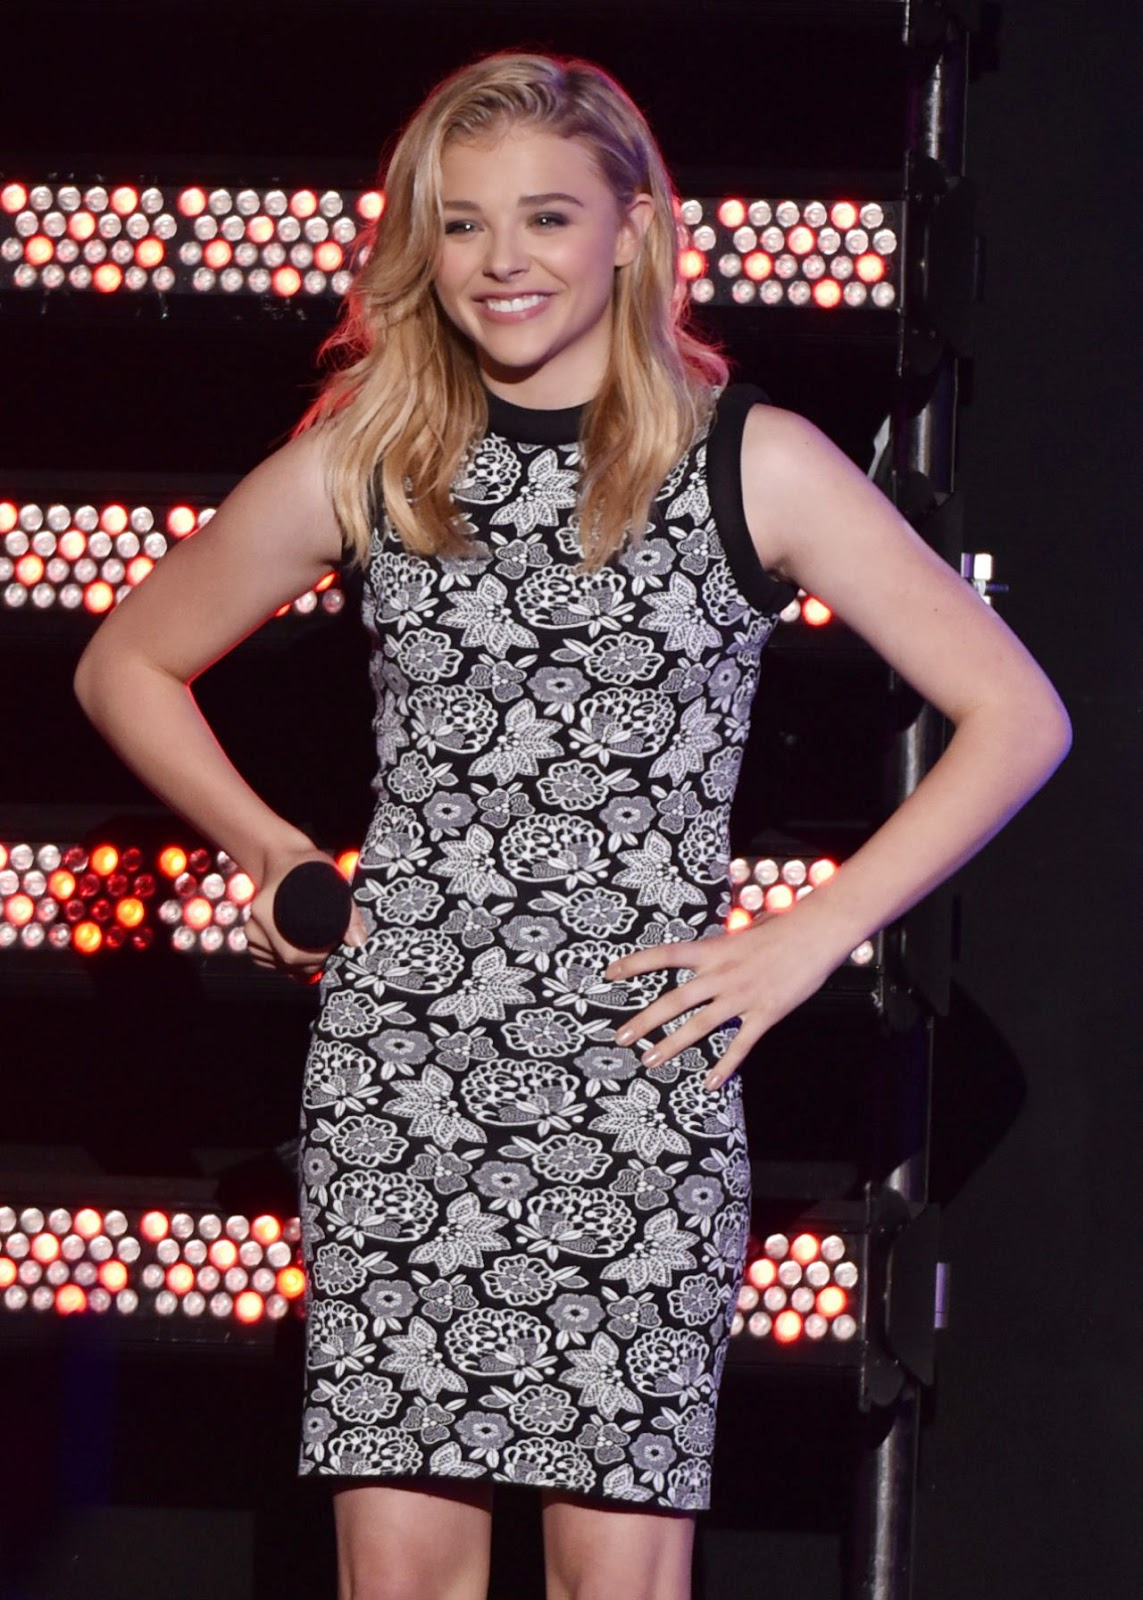 Chloe Moretz in an embroidered mini dress at the mtvU Fandom Awards at Comic-Con 2014